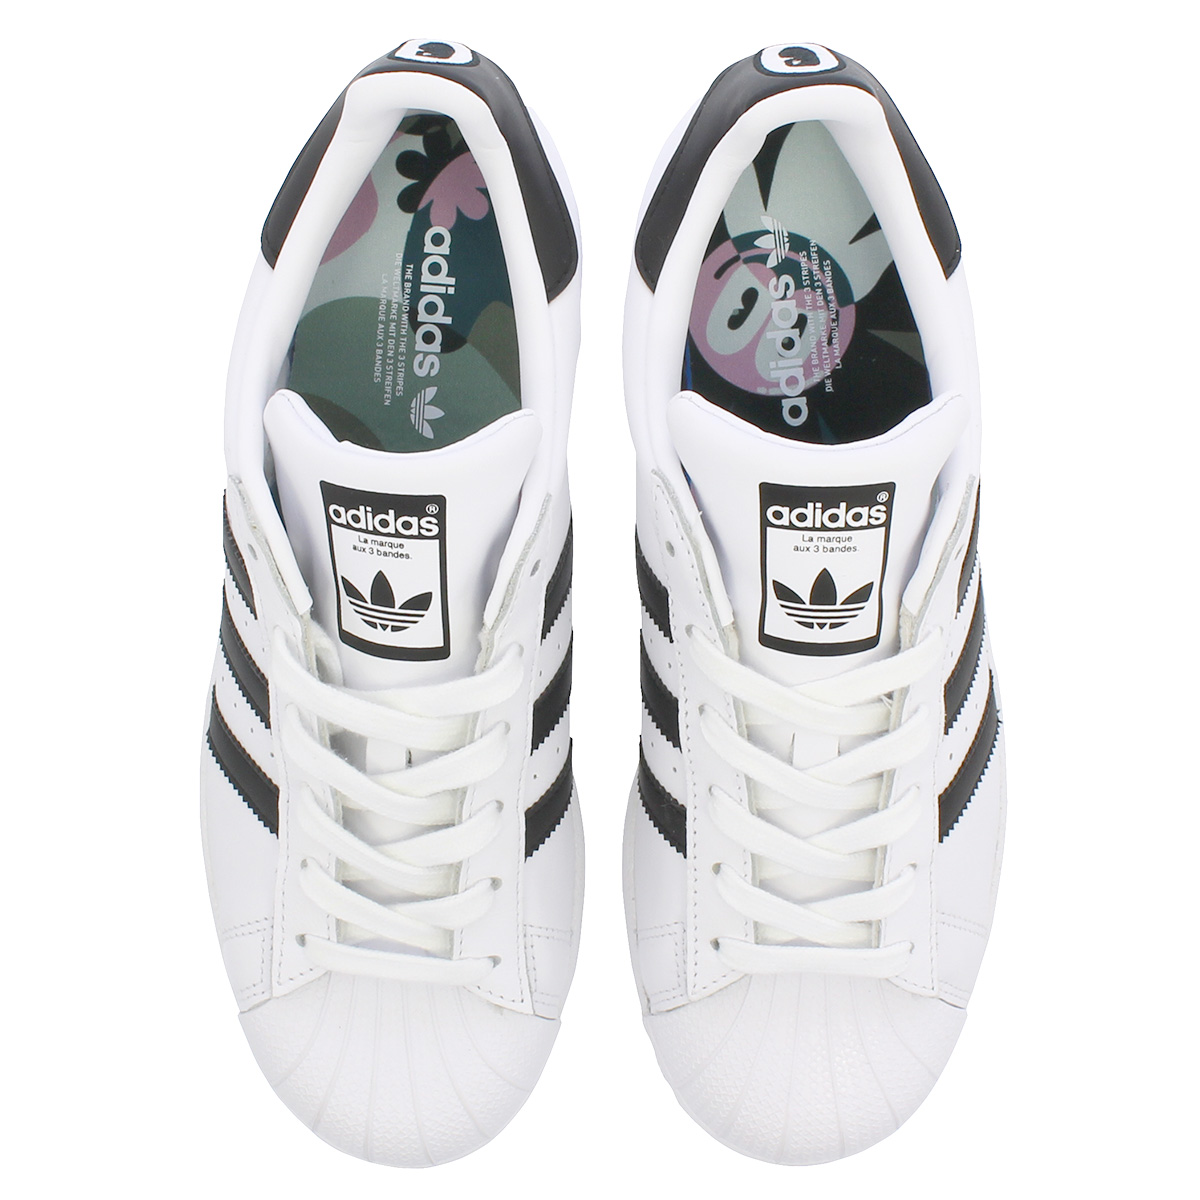 96d0942529d adidas SUPERSTAR W Adidas superstar W RUNNING WHITE RED NIGHT SILVER MET  cm8414